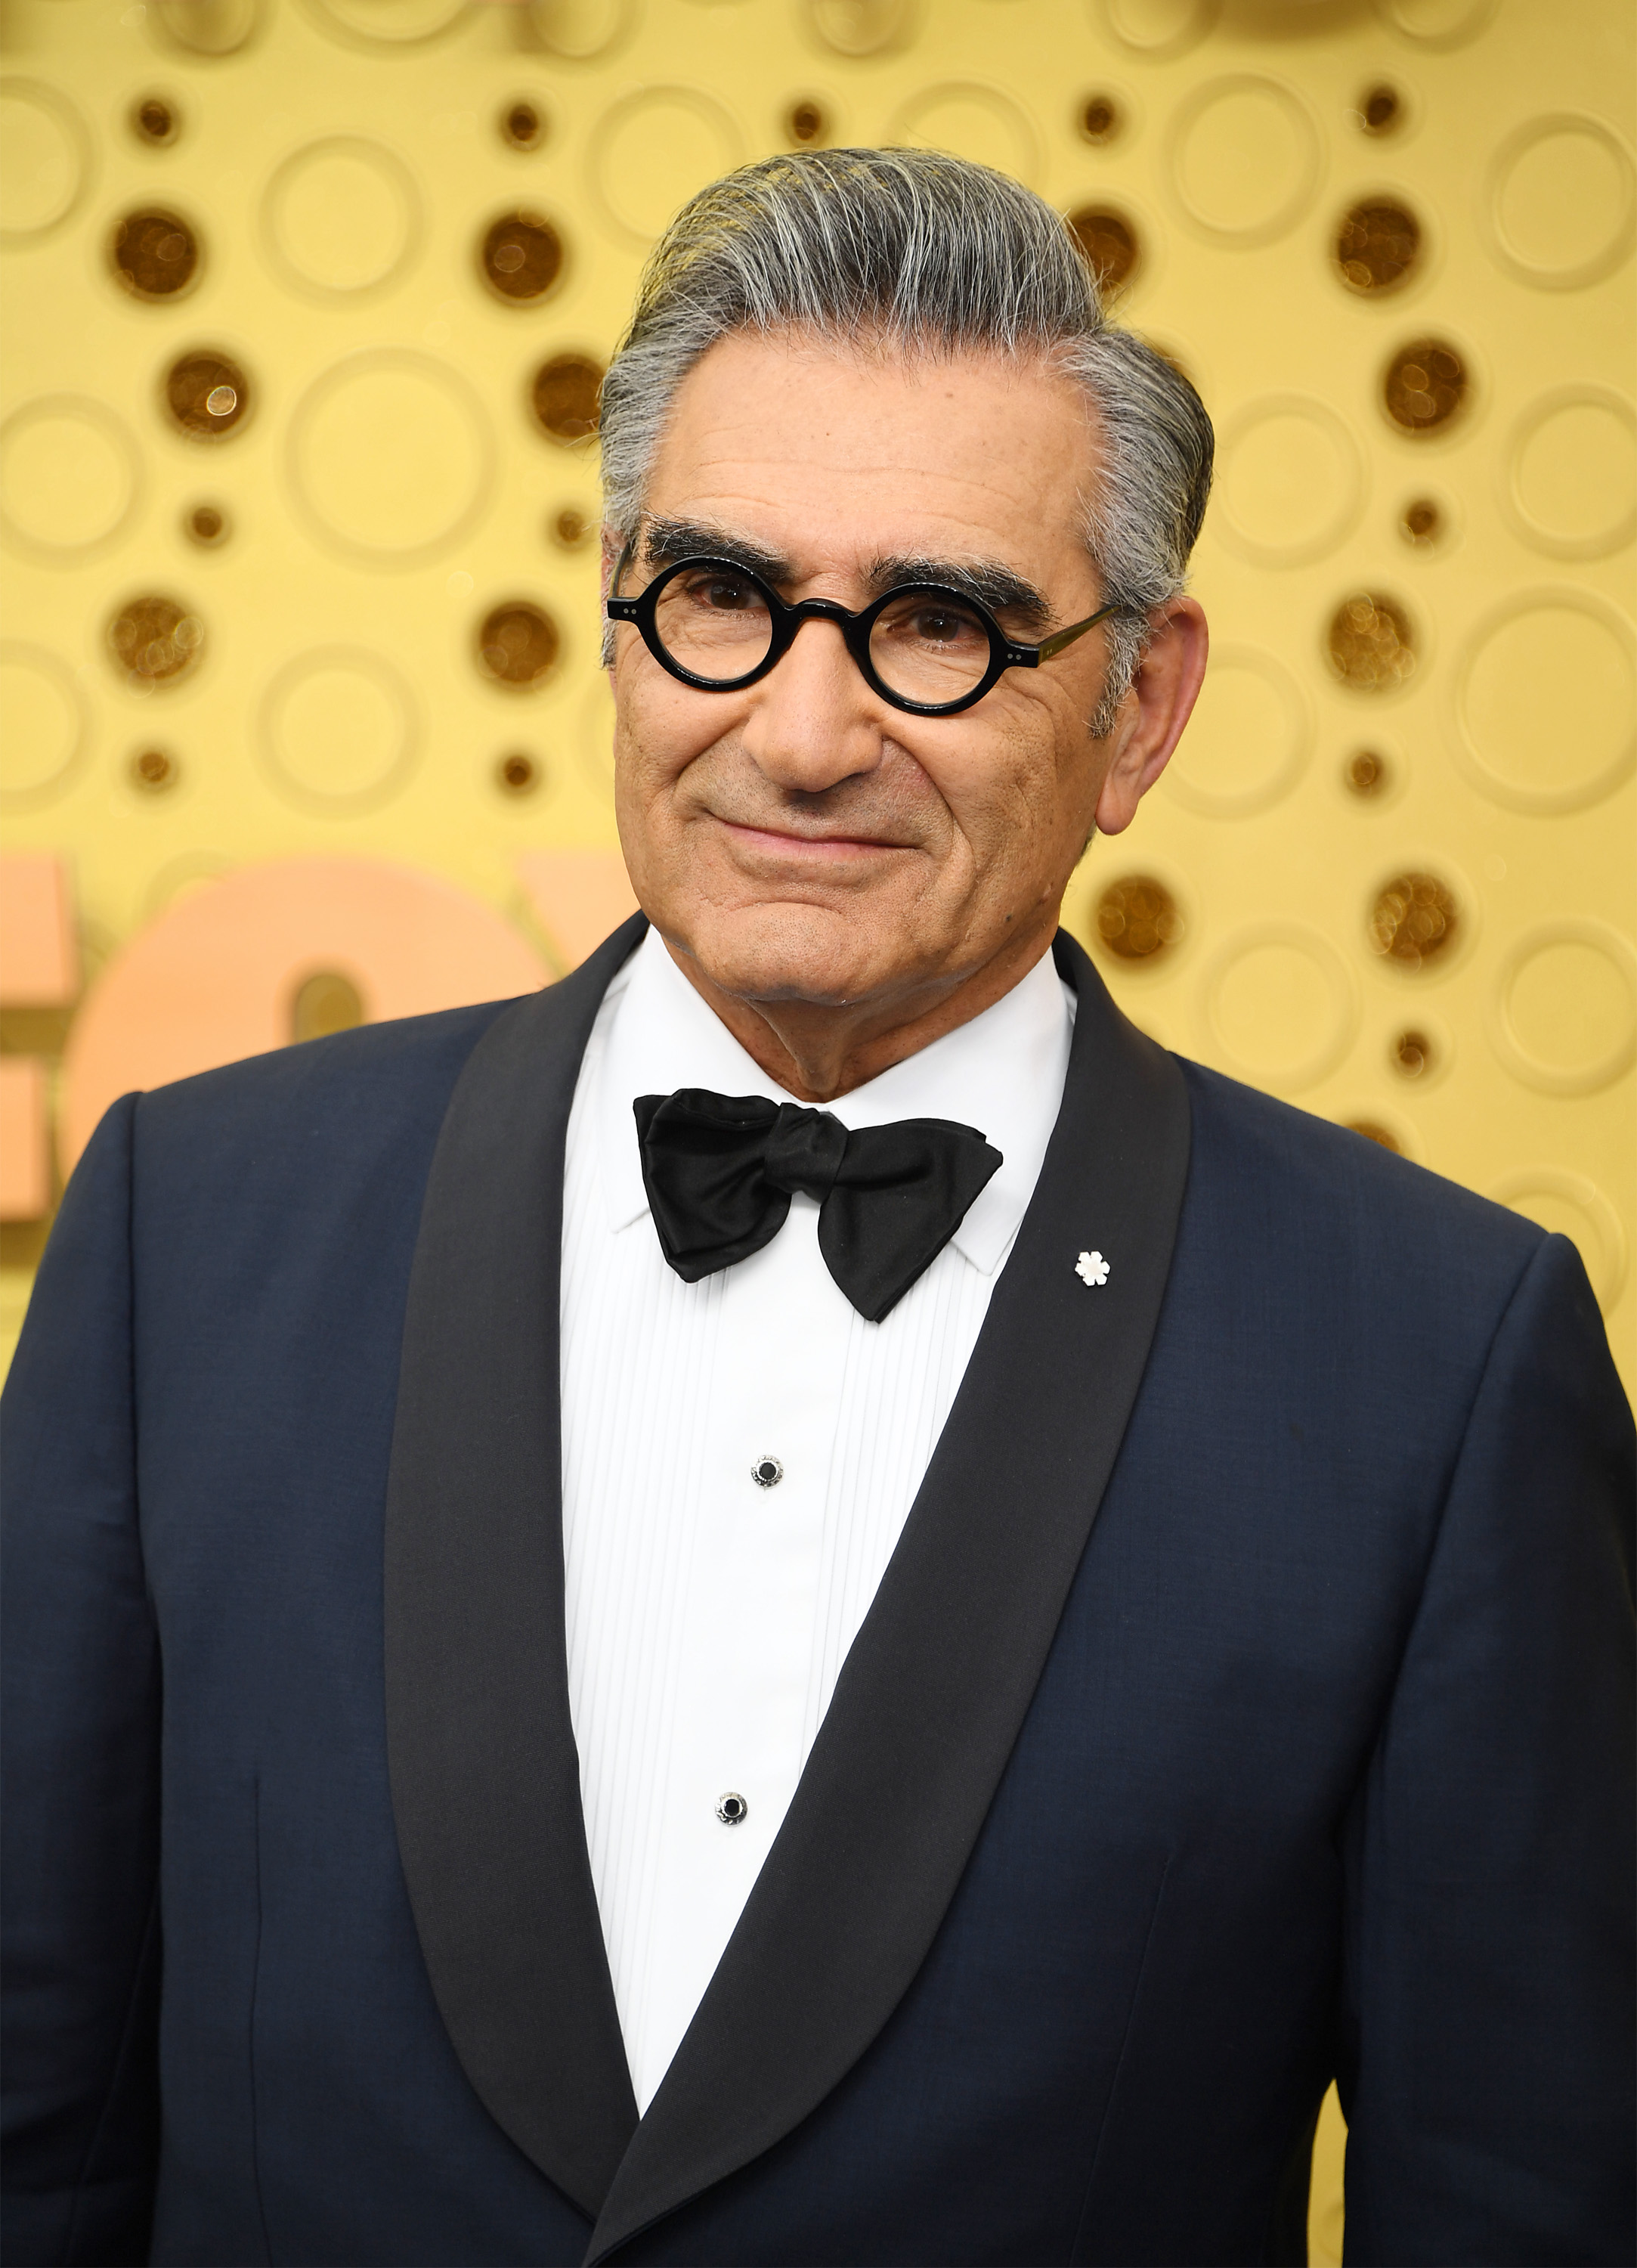 Eugene Levy at an event for The 71st Primetime Emmy Awards (2019)